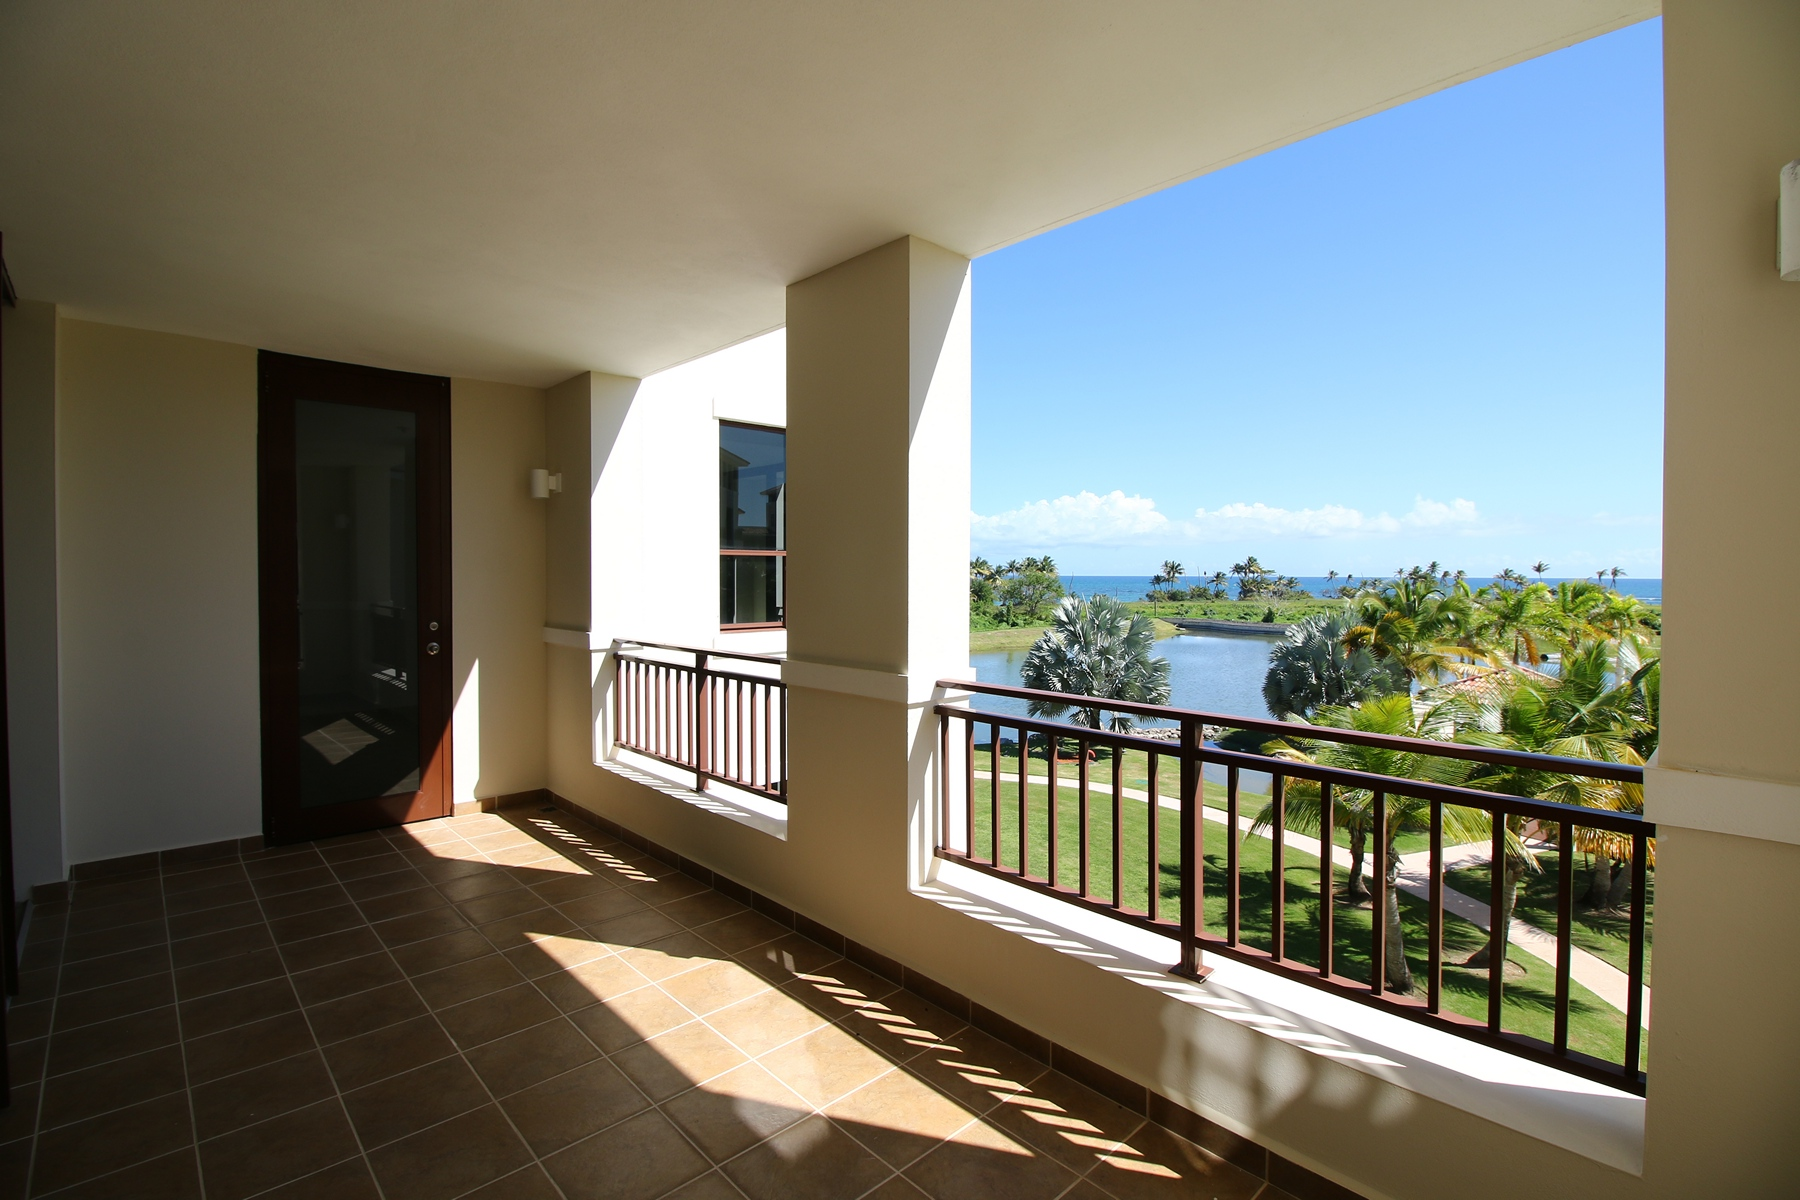 Additional photo for property listing at Residence 222 at 238 Candelero Drive 238 Candelero Drive, Apt 222 Solarea Beach Resort and Yacht Club Palmas Del Mar, Puerto Rico 00791 波多黎各